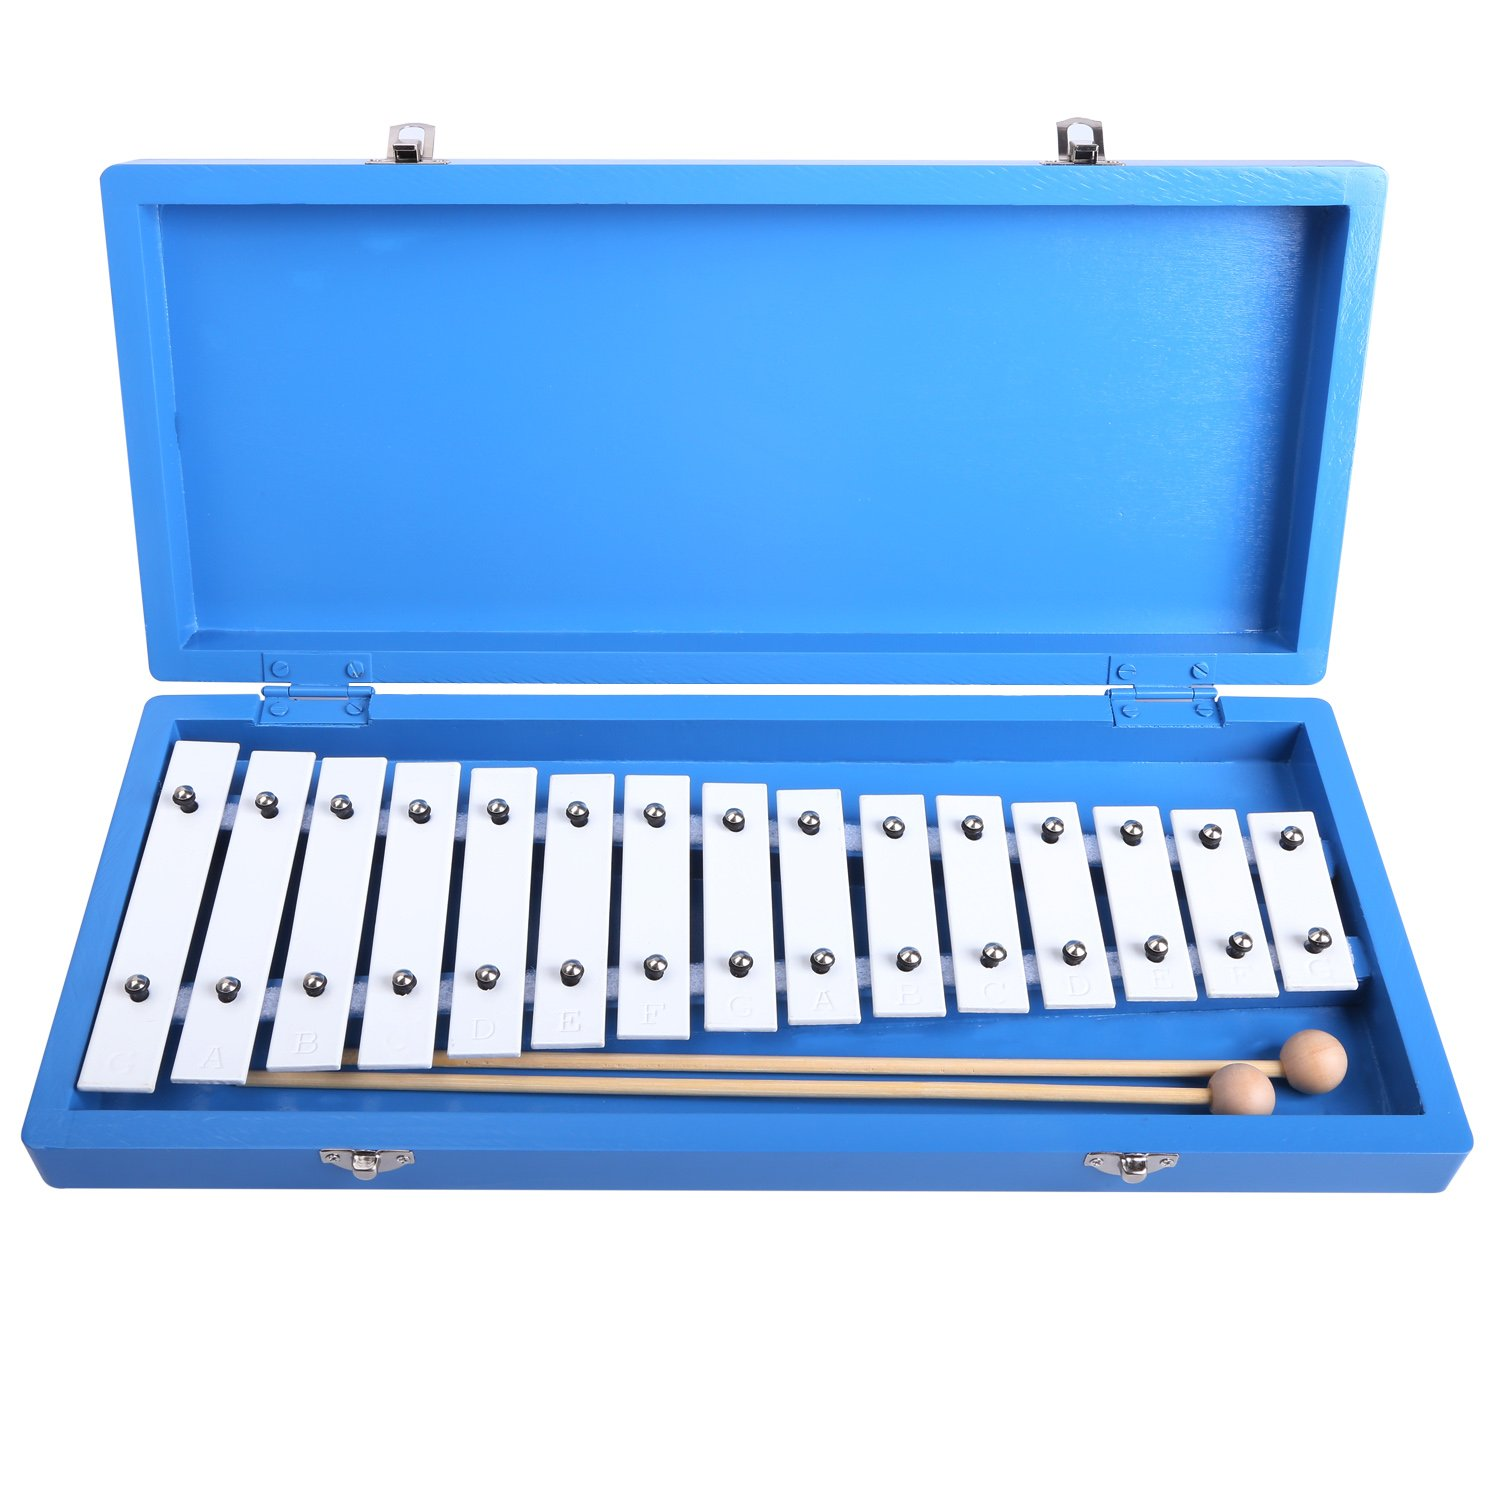 CAHAYA Glockenspiel Xylophone Educational Enlighten Rhythm Music Instrument Piano 15 Tones Aluminum with Two Wooden Mallets in Blue Box for Baby Children